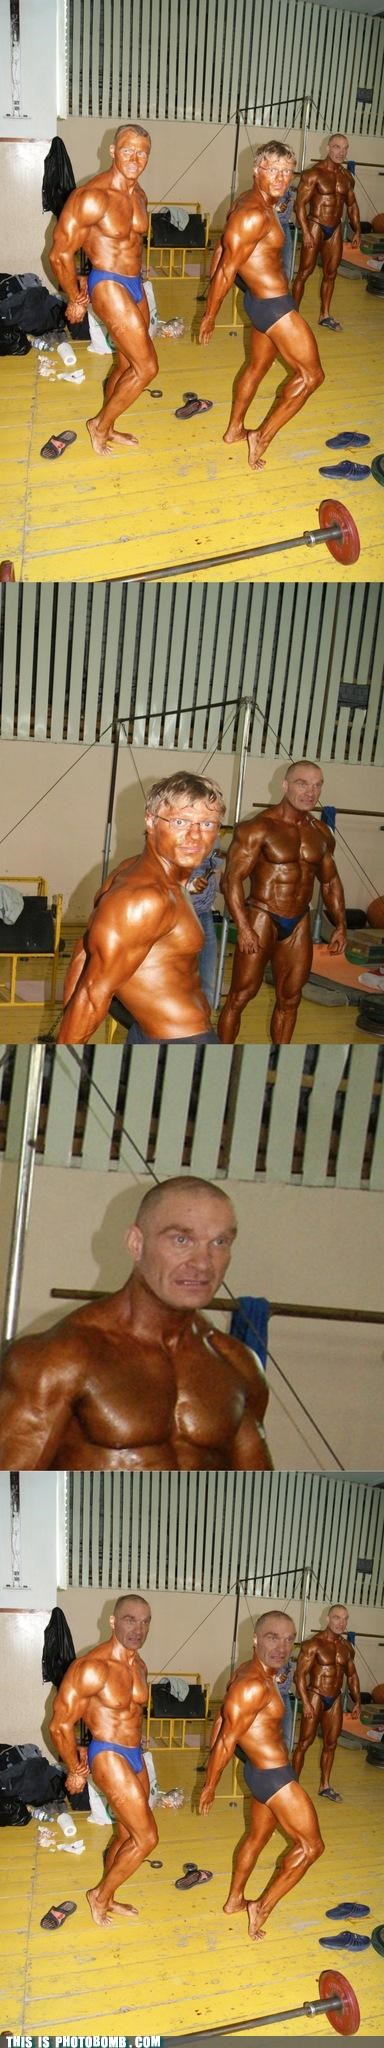 body builders Reframe scariest thing scary tan working out - 5433567232